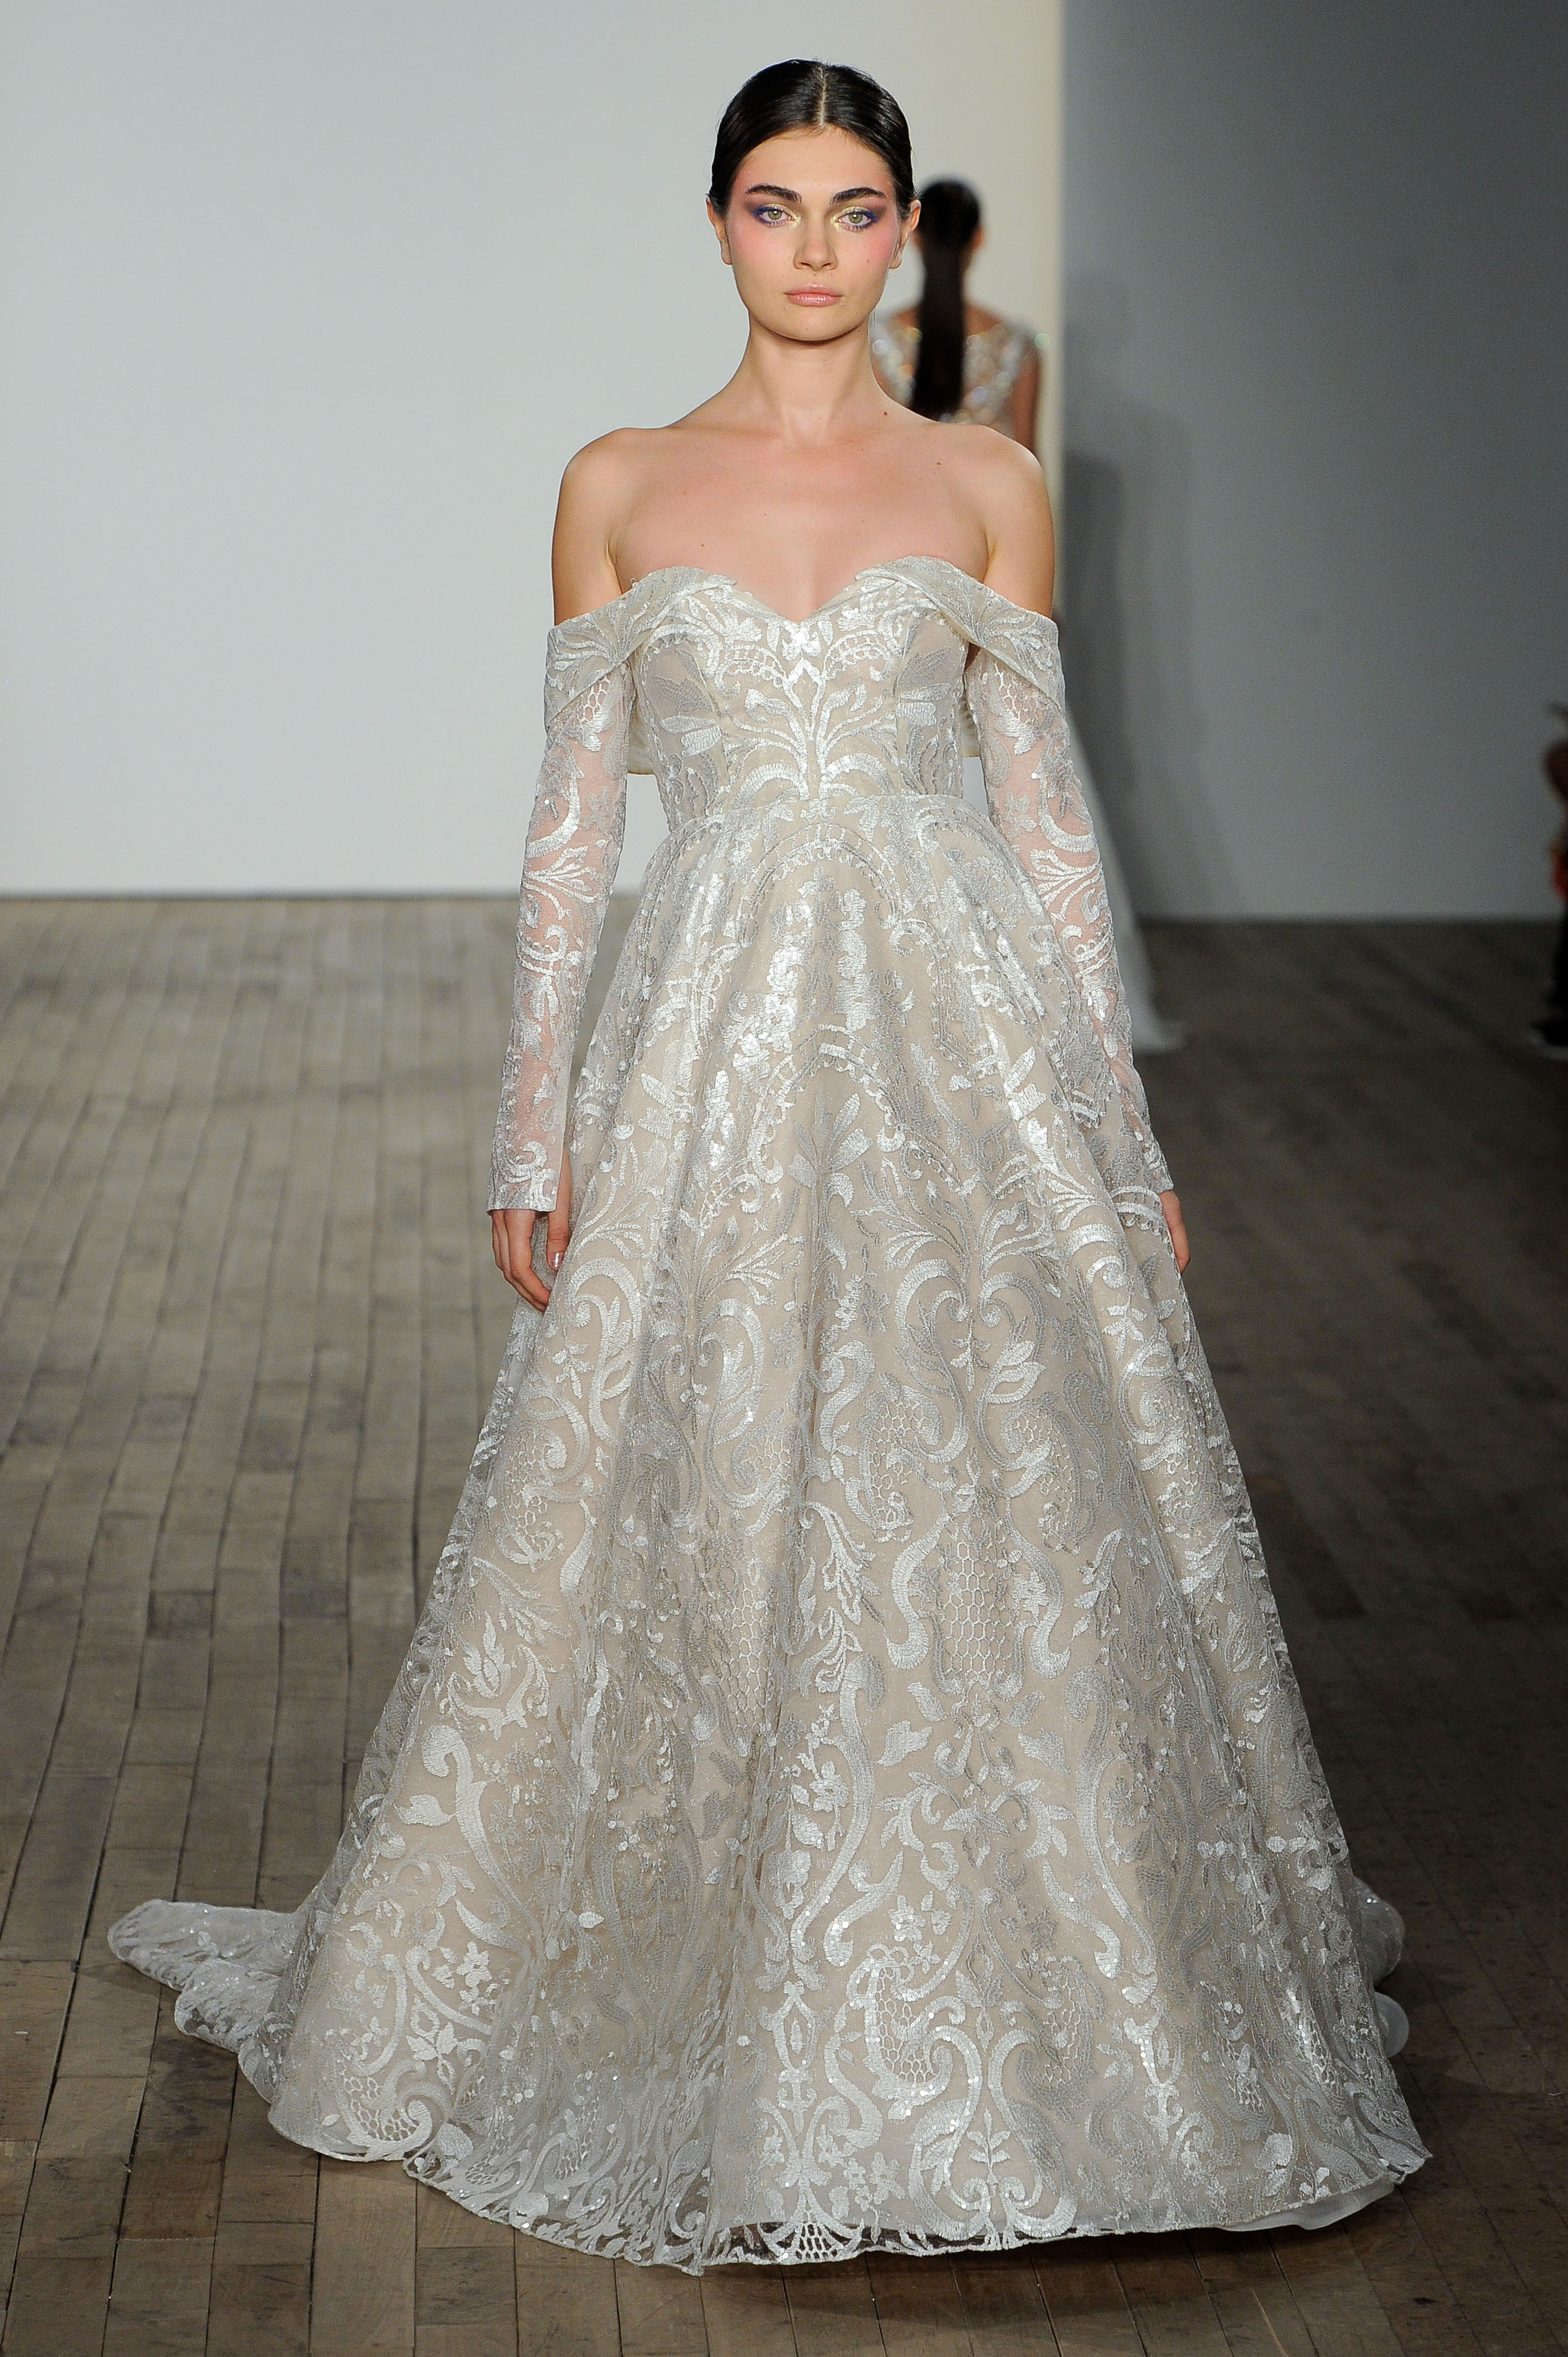 haley paige fall 2019 over the shoulder long sleeve wedding dress